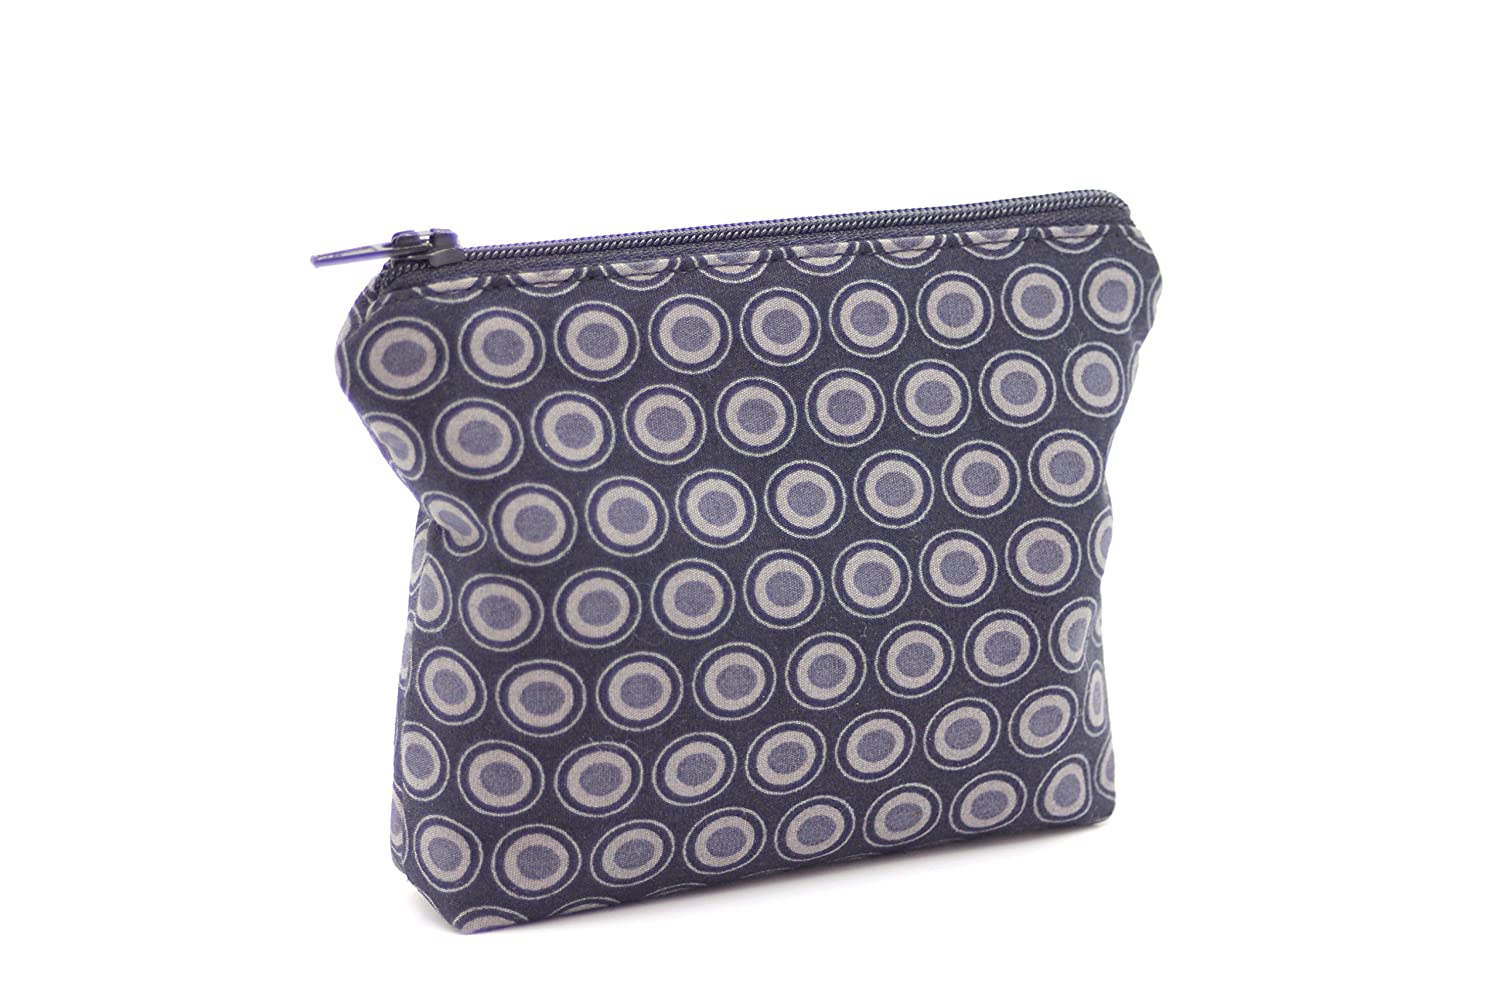 bcb8e8931a1 Amazon.com  Black Oval Essential Oil Bag, Cotton Zipper Pouch, Travel Bag  Set, Cosmetic Cotton Bag, Makeup Bag, Toiletry Bag, Holiday Gift, Gift for  Her  ...